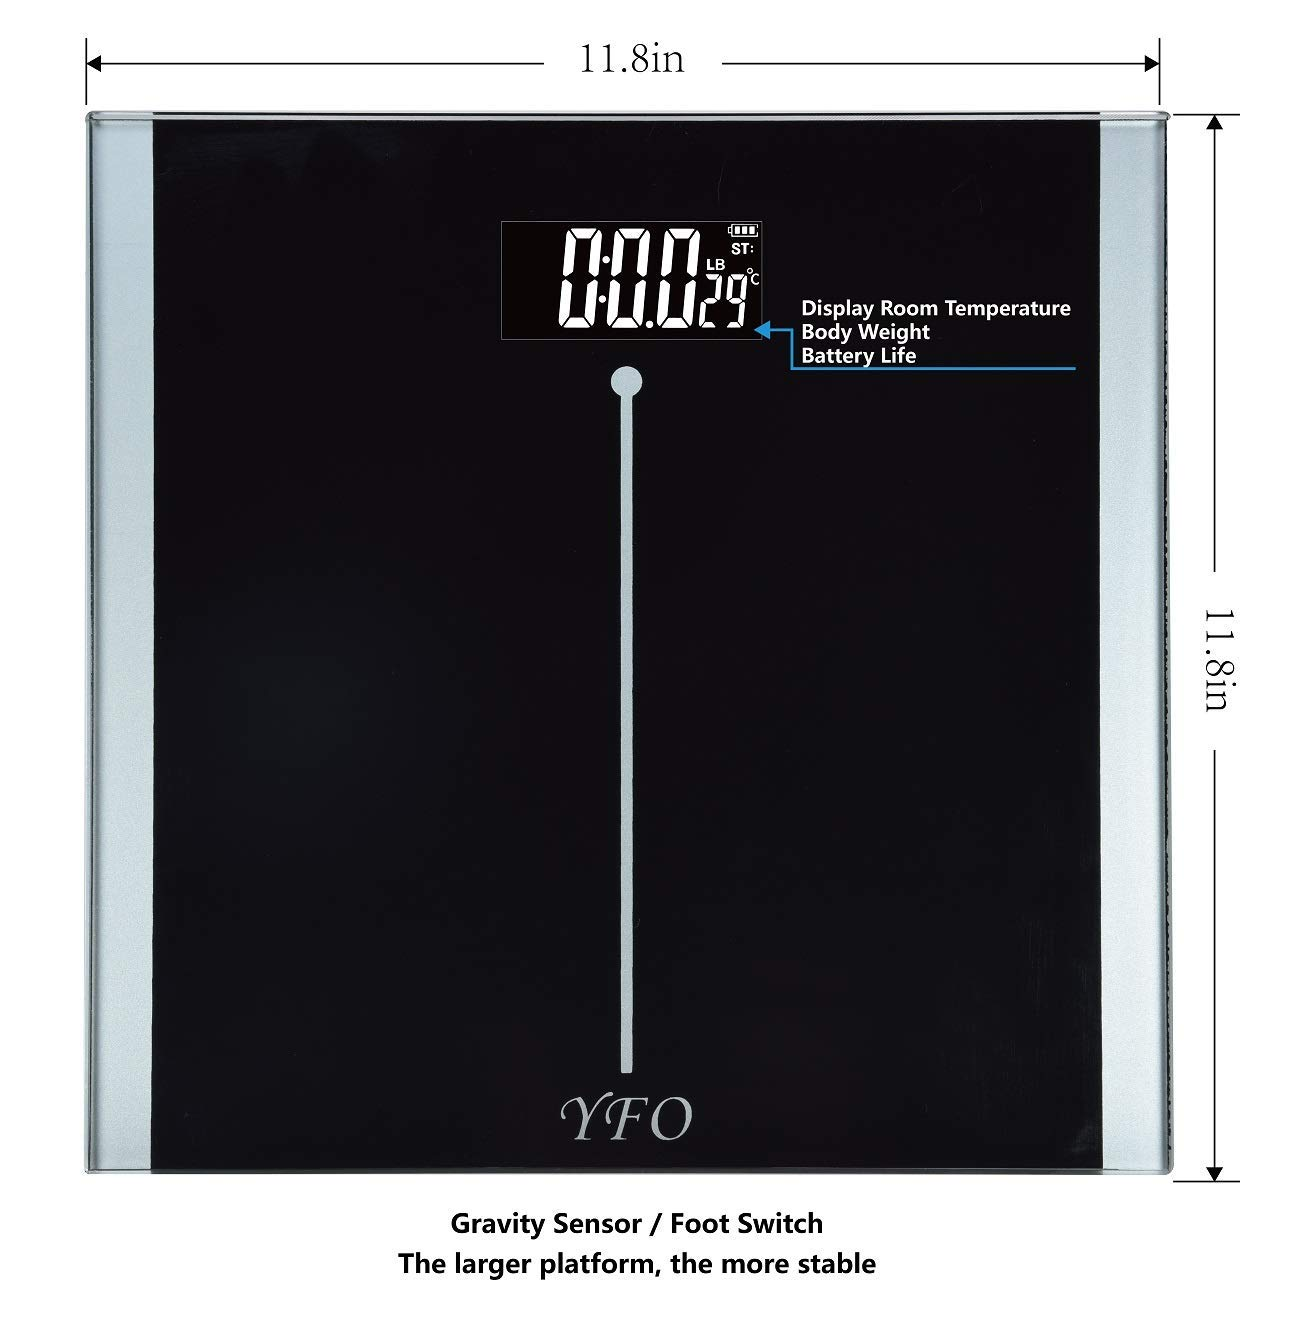 Digital Body Weight Bathroom Scale with Step-On Technology 11.8″*11.8″ Large Platform Plus 0.32in Tempered Safety Glass,Two Unit KG and LB Display, Room Tempreture, Elegant Silvery Black